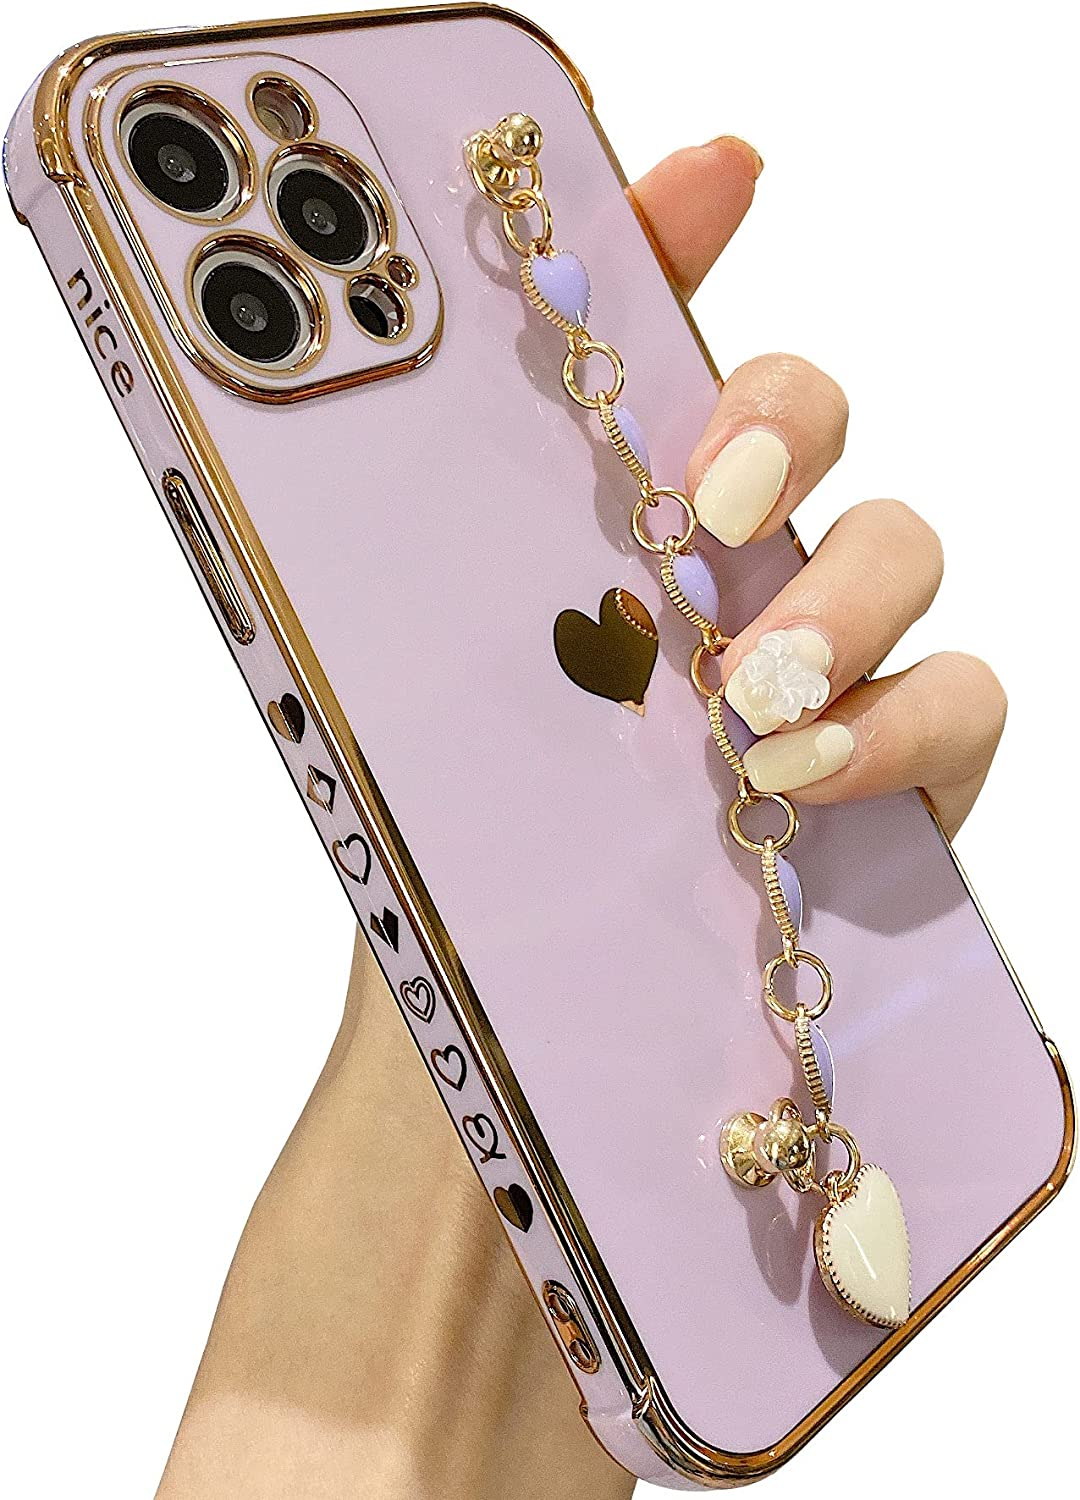 JEUTIEN Cute iPhone 12 Pro Max Case for Women & Girls, Plated Gold Glitter Cover with Love-Heart Strap Bracelet Chain Soft Flexible Glossy TPU Bumper Protective Phone Cases 6.7